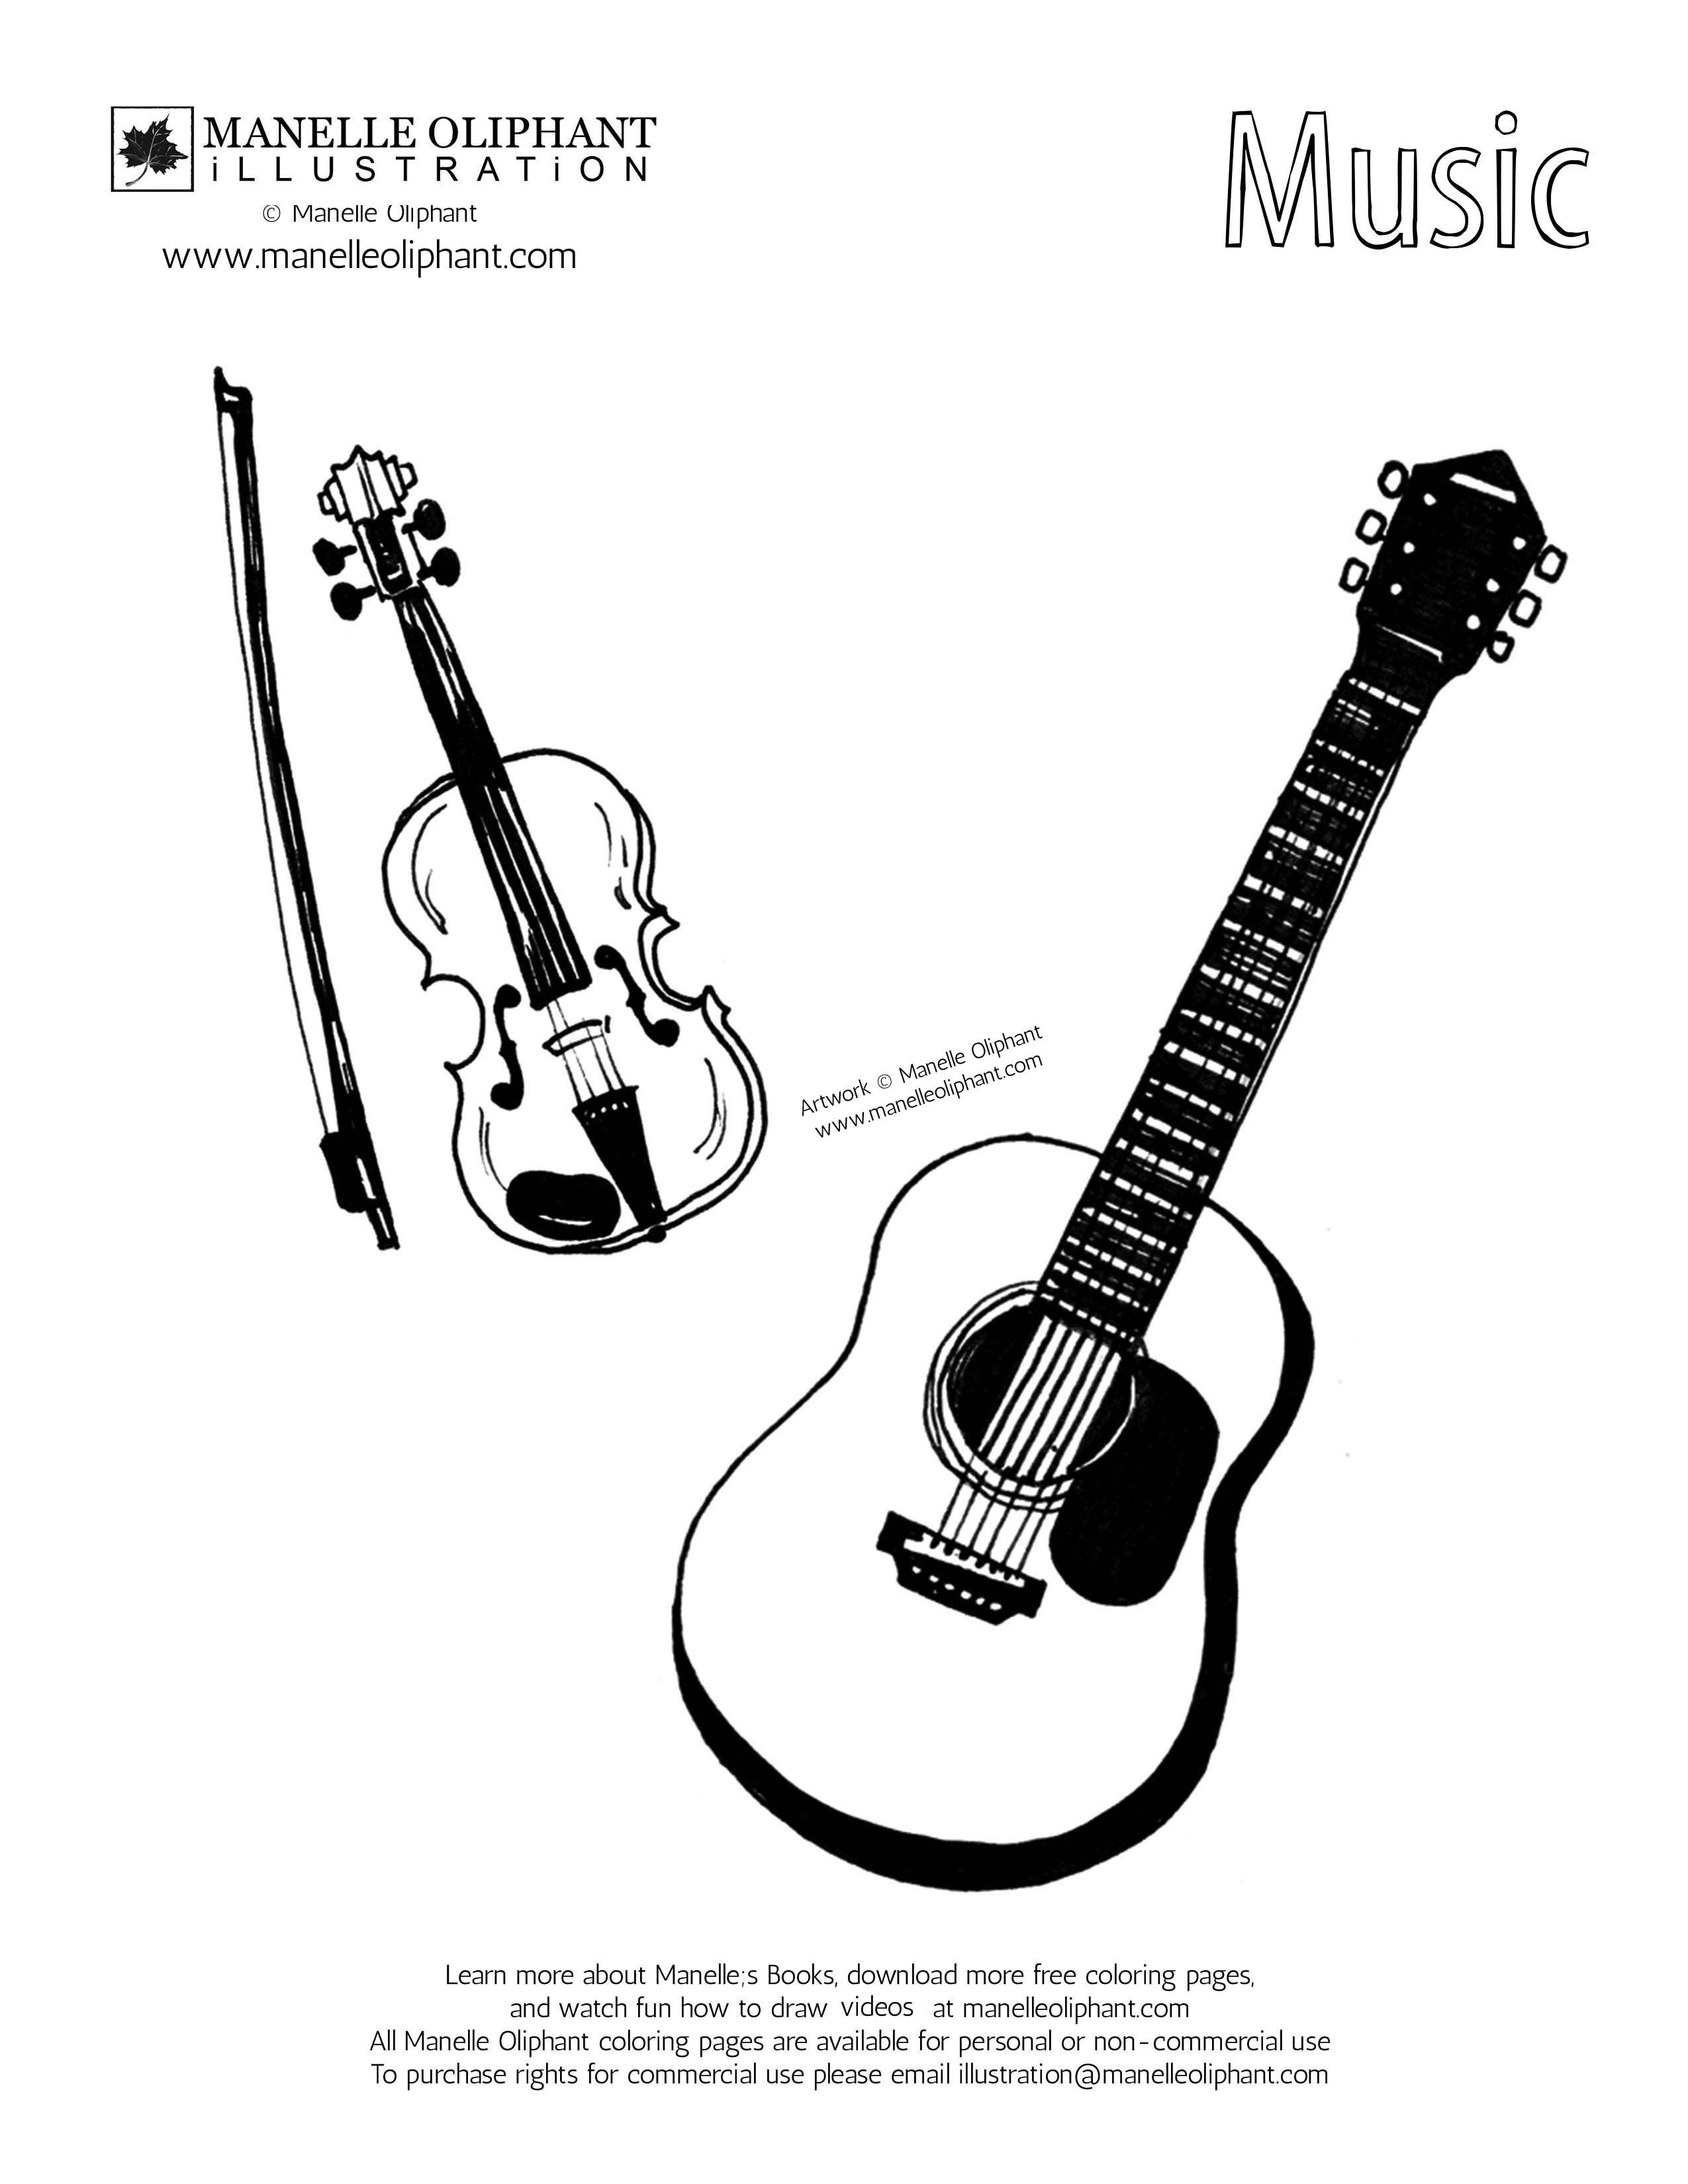 free printable coloring pages of musical instruments musical instruments coloring page coloring pages music instruments pages free musical coloring printable of